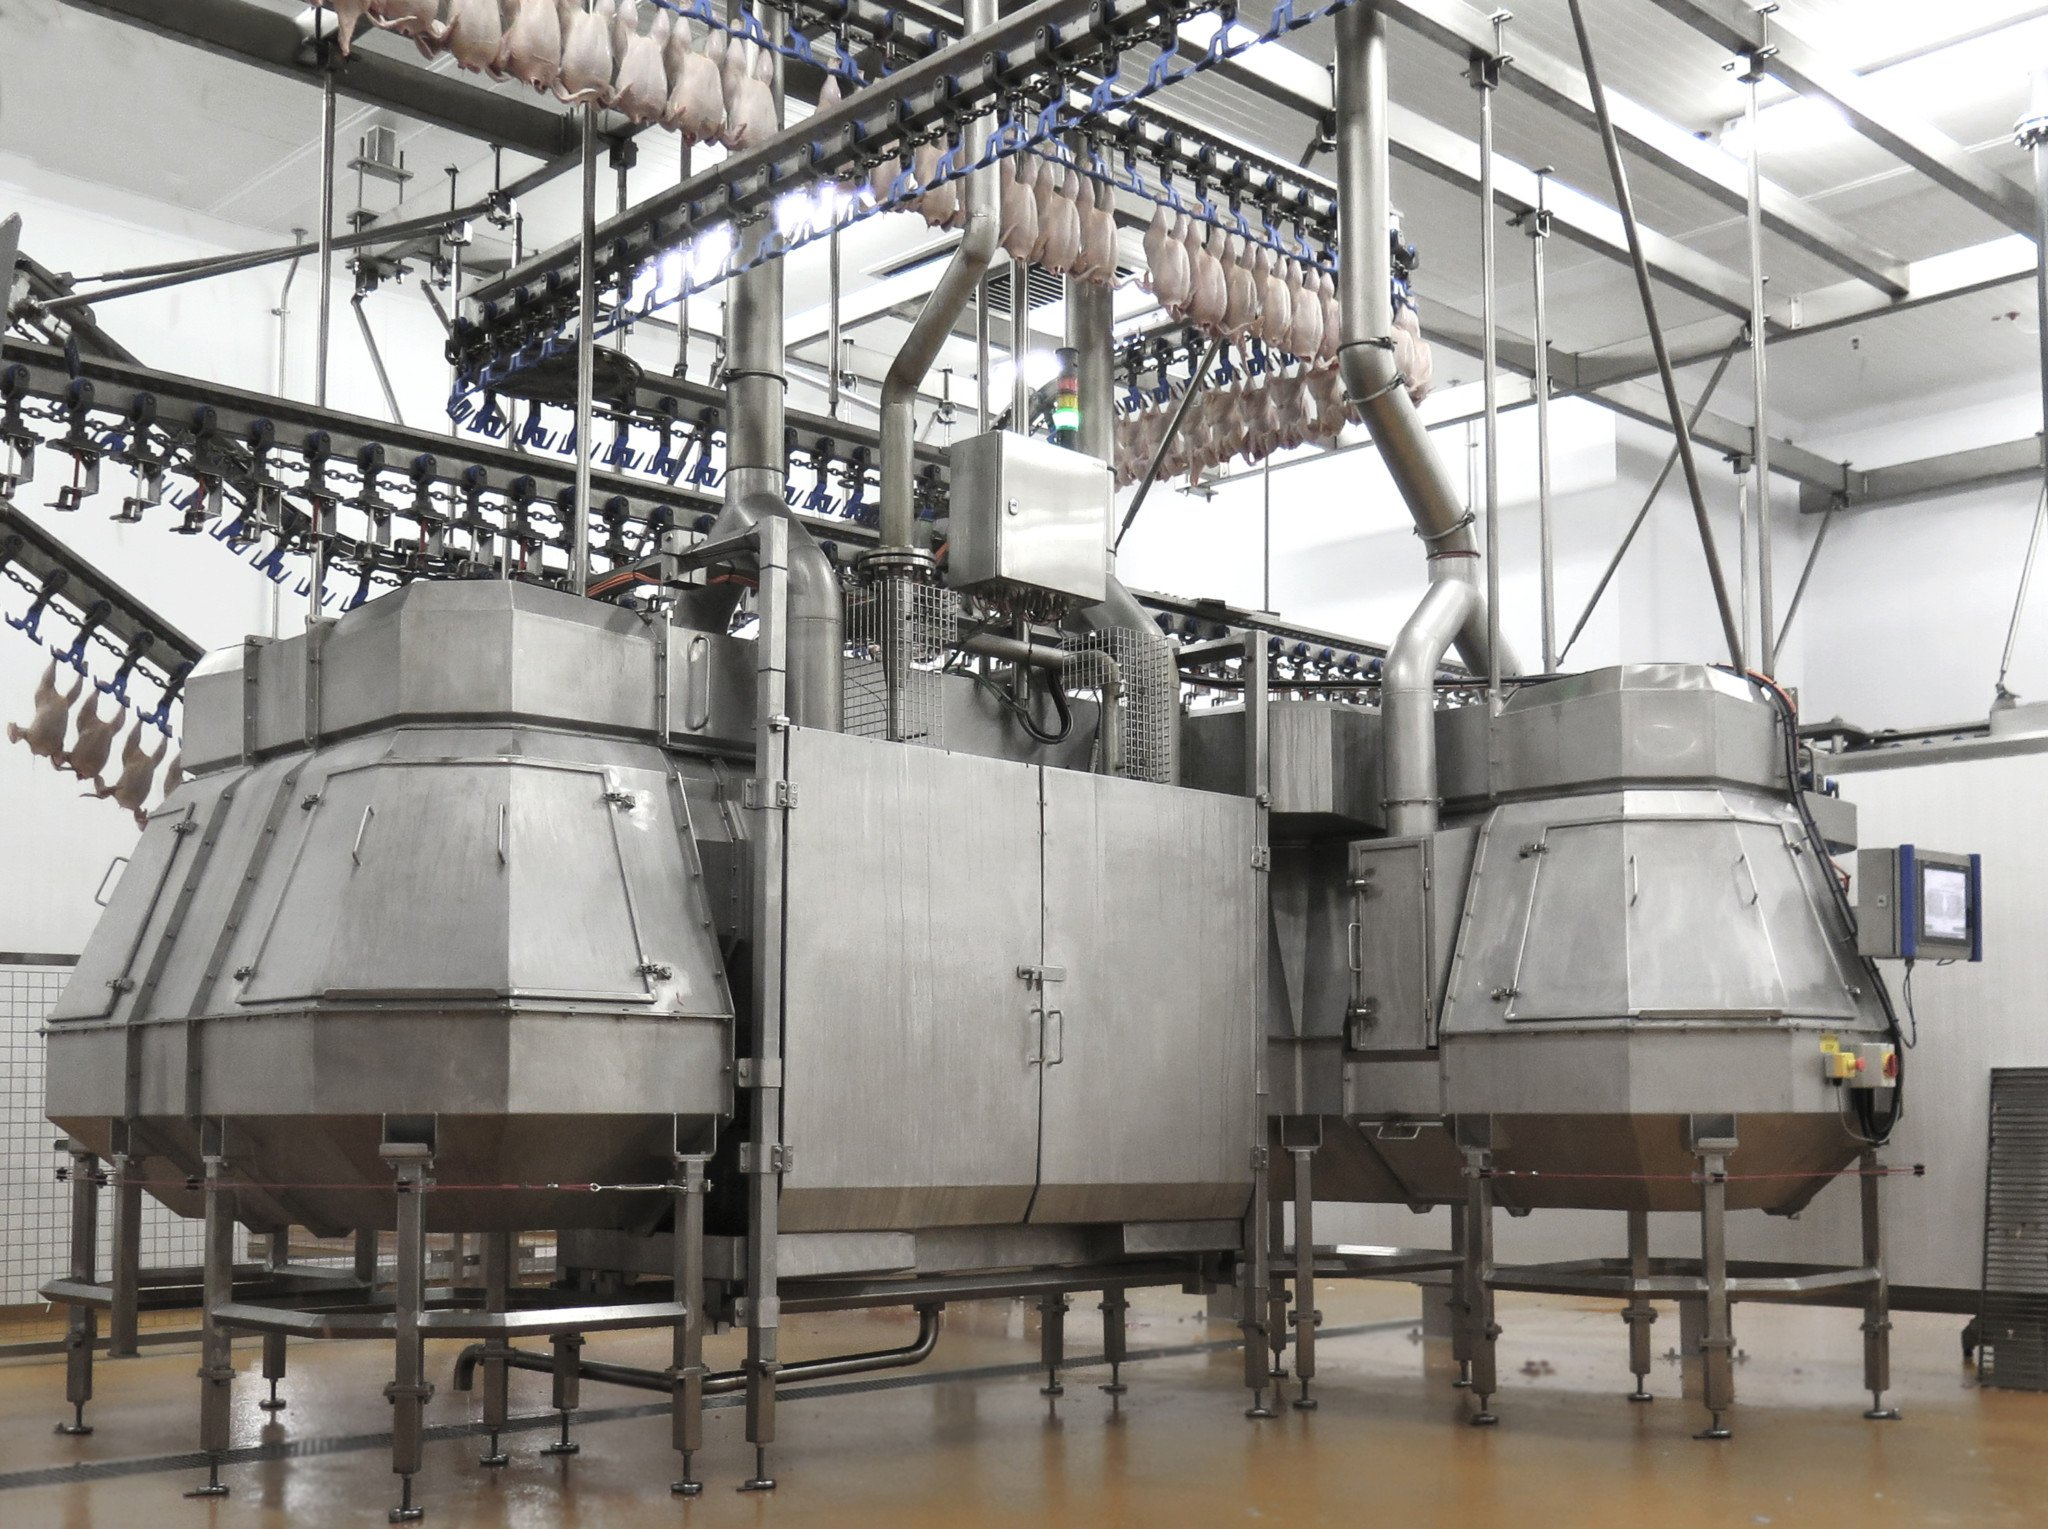 IA Poultry SonoSteam treatment equipment at Cargill slaughterhouse